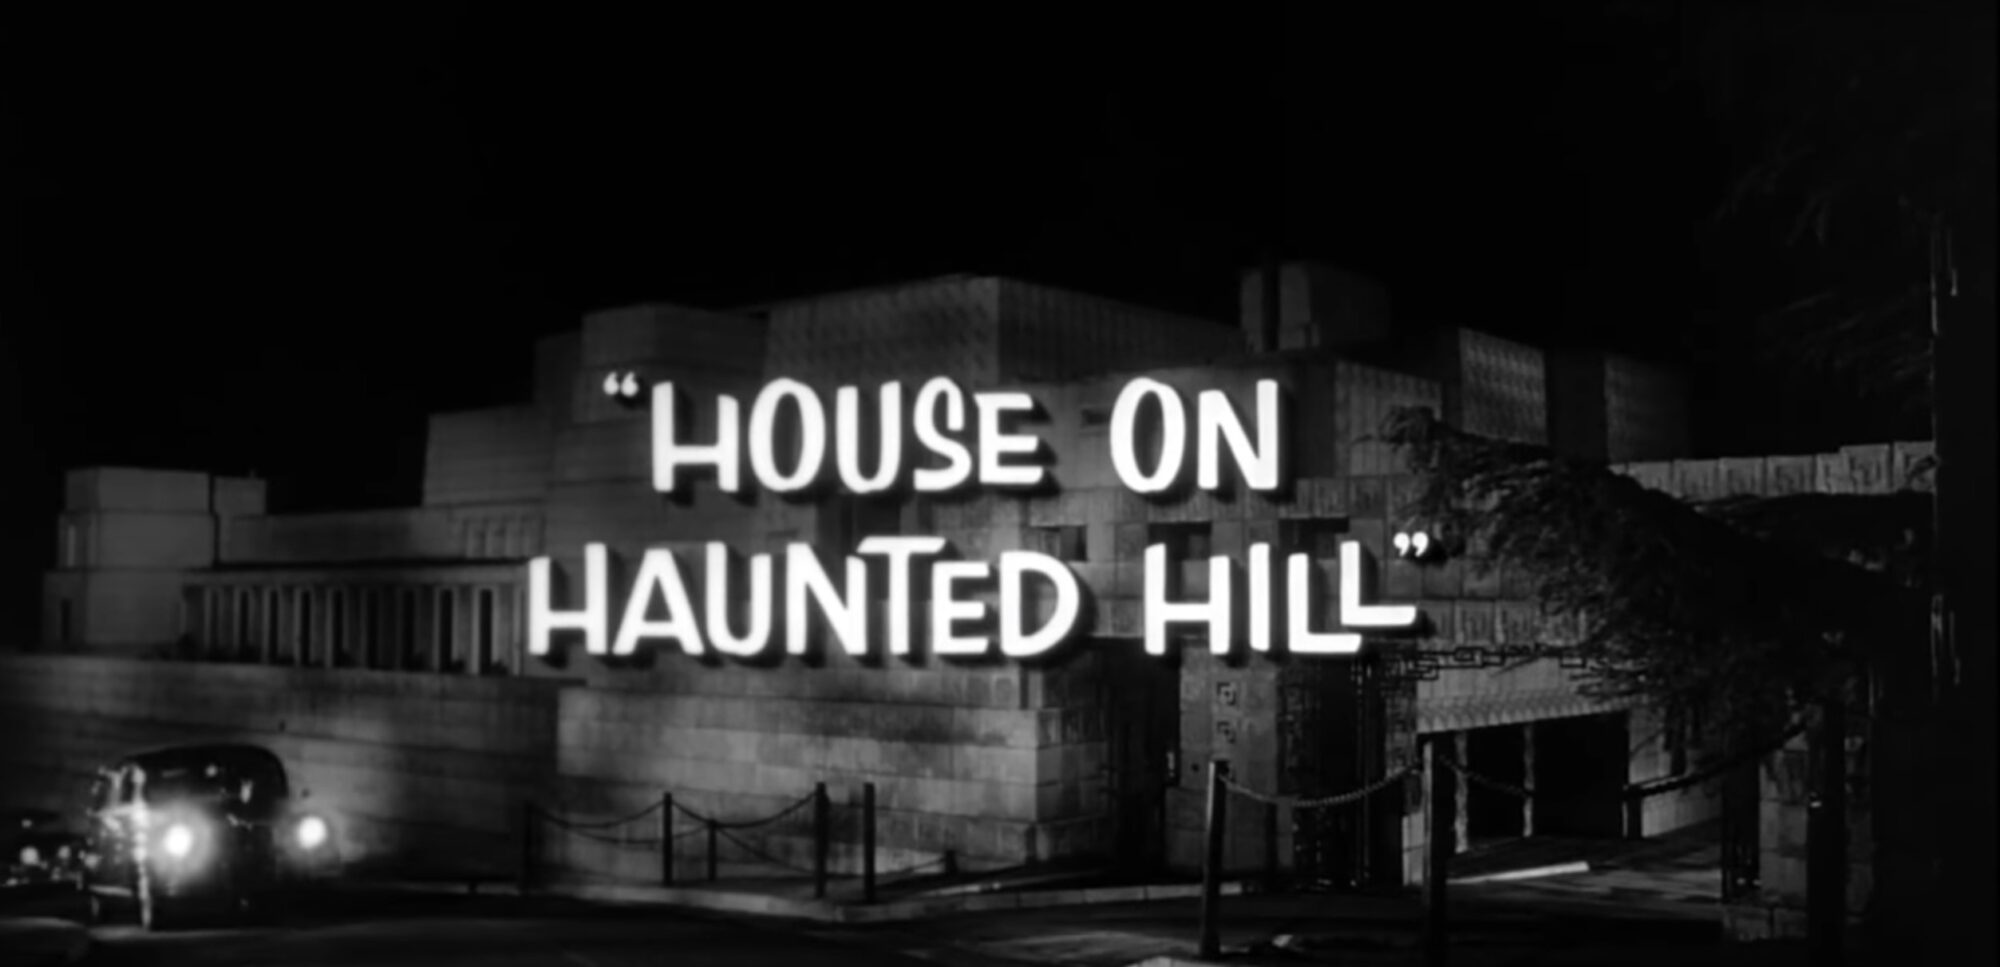 house haunted hill title